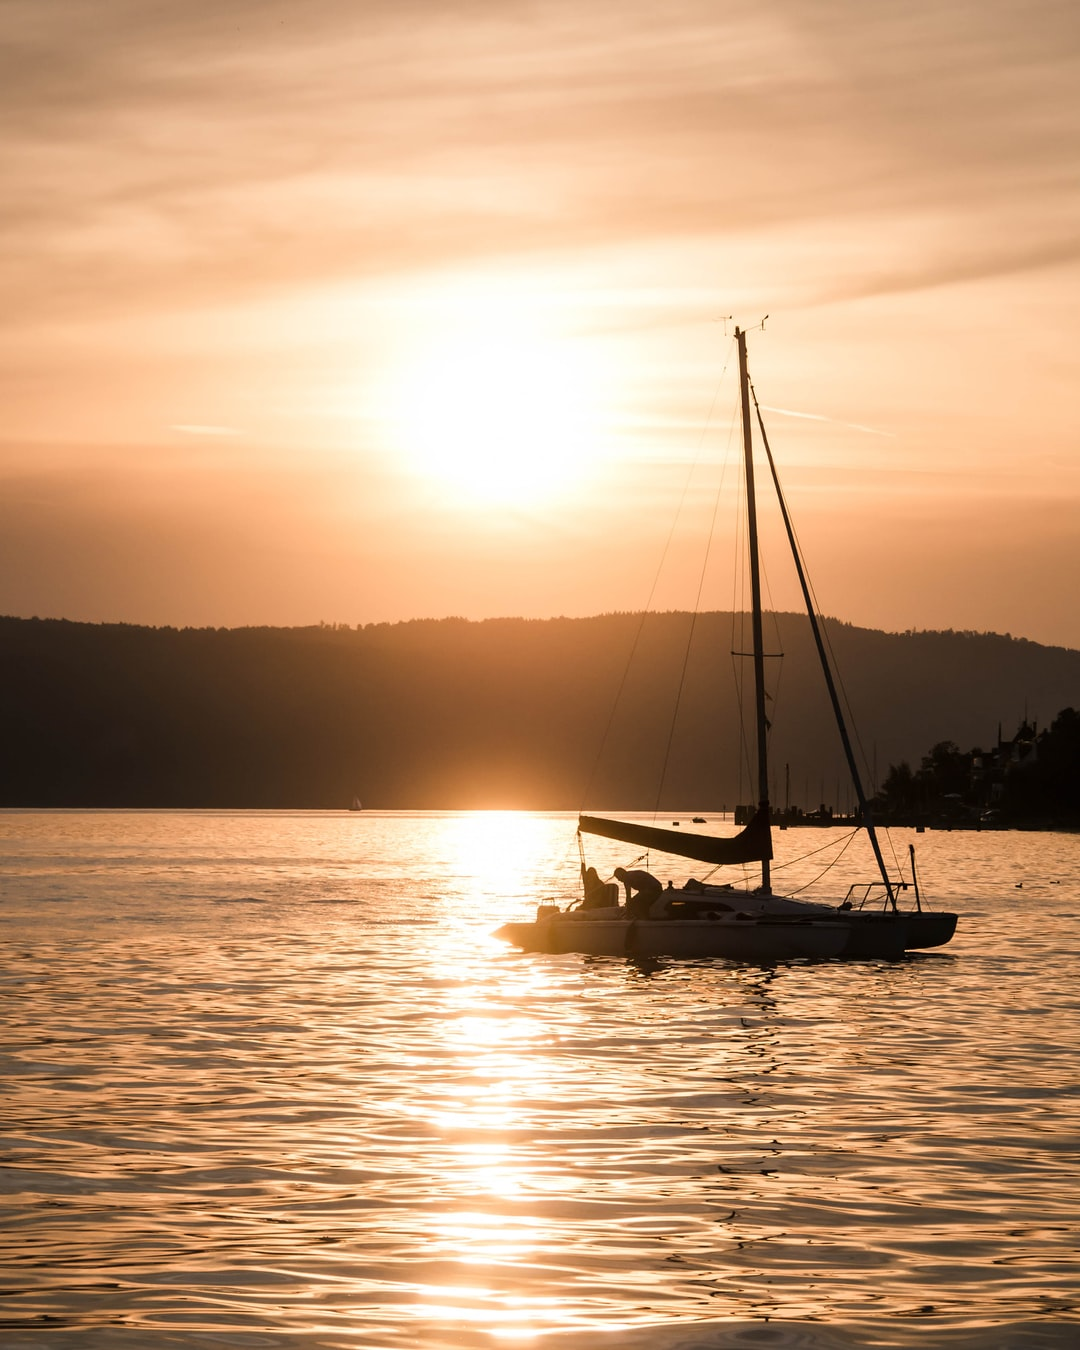 Sunset at the Lake Constance